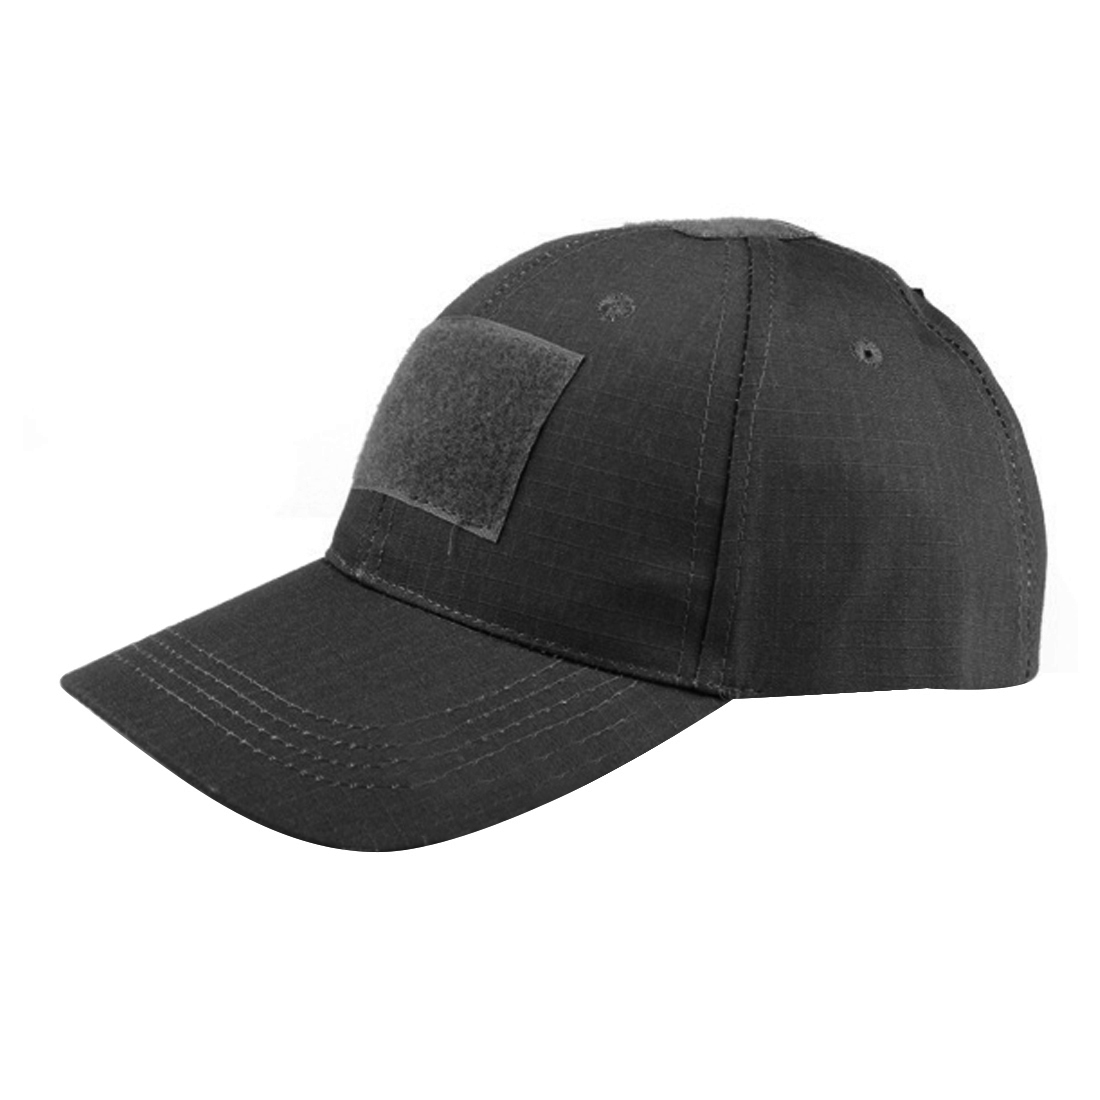 Surwish Solid Color Military Tactical Hat Outdoor Activities Cap  For Nerf And For Airsoft Game - Black